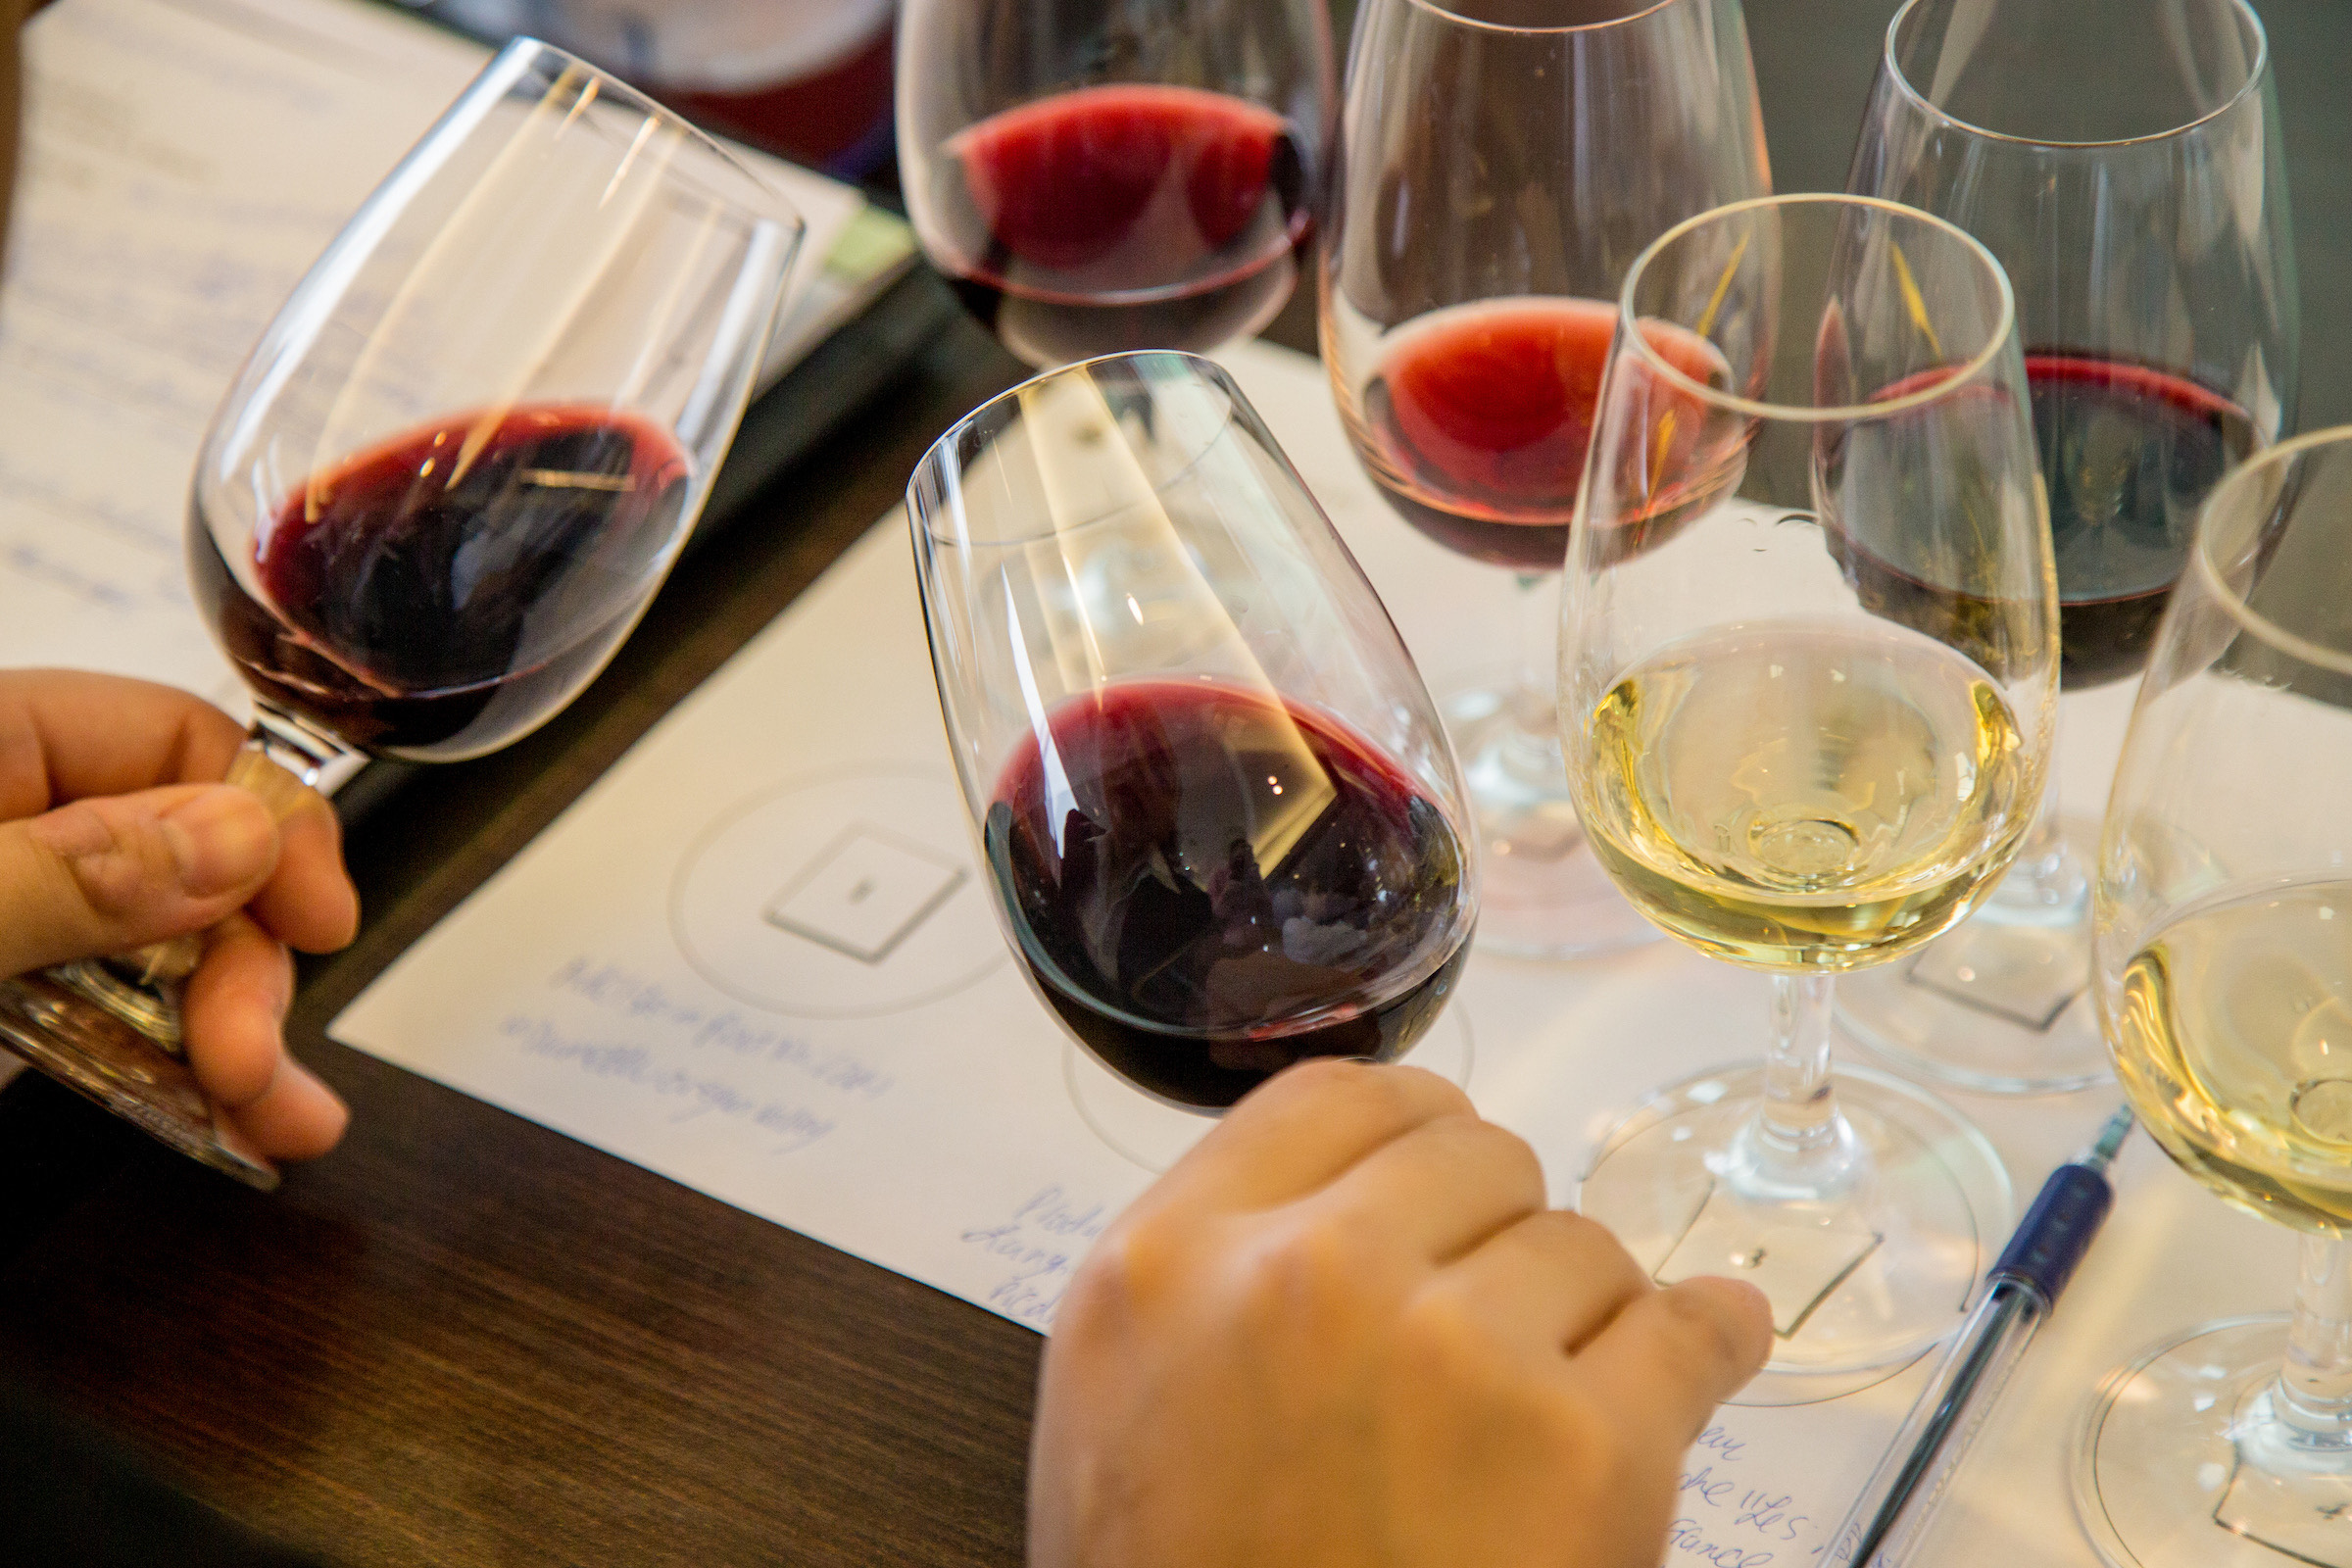 Students can take sommelier classes at Johnson & Wales University.